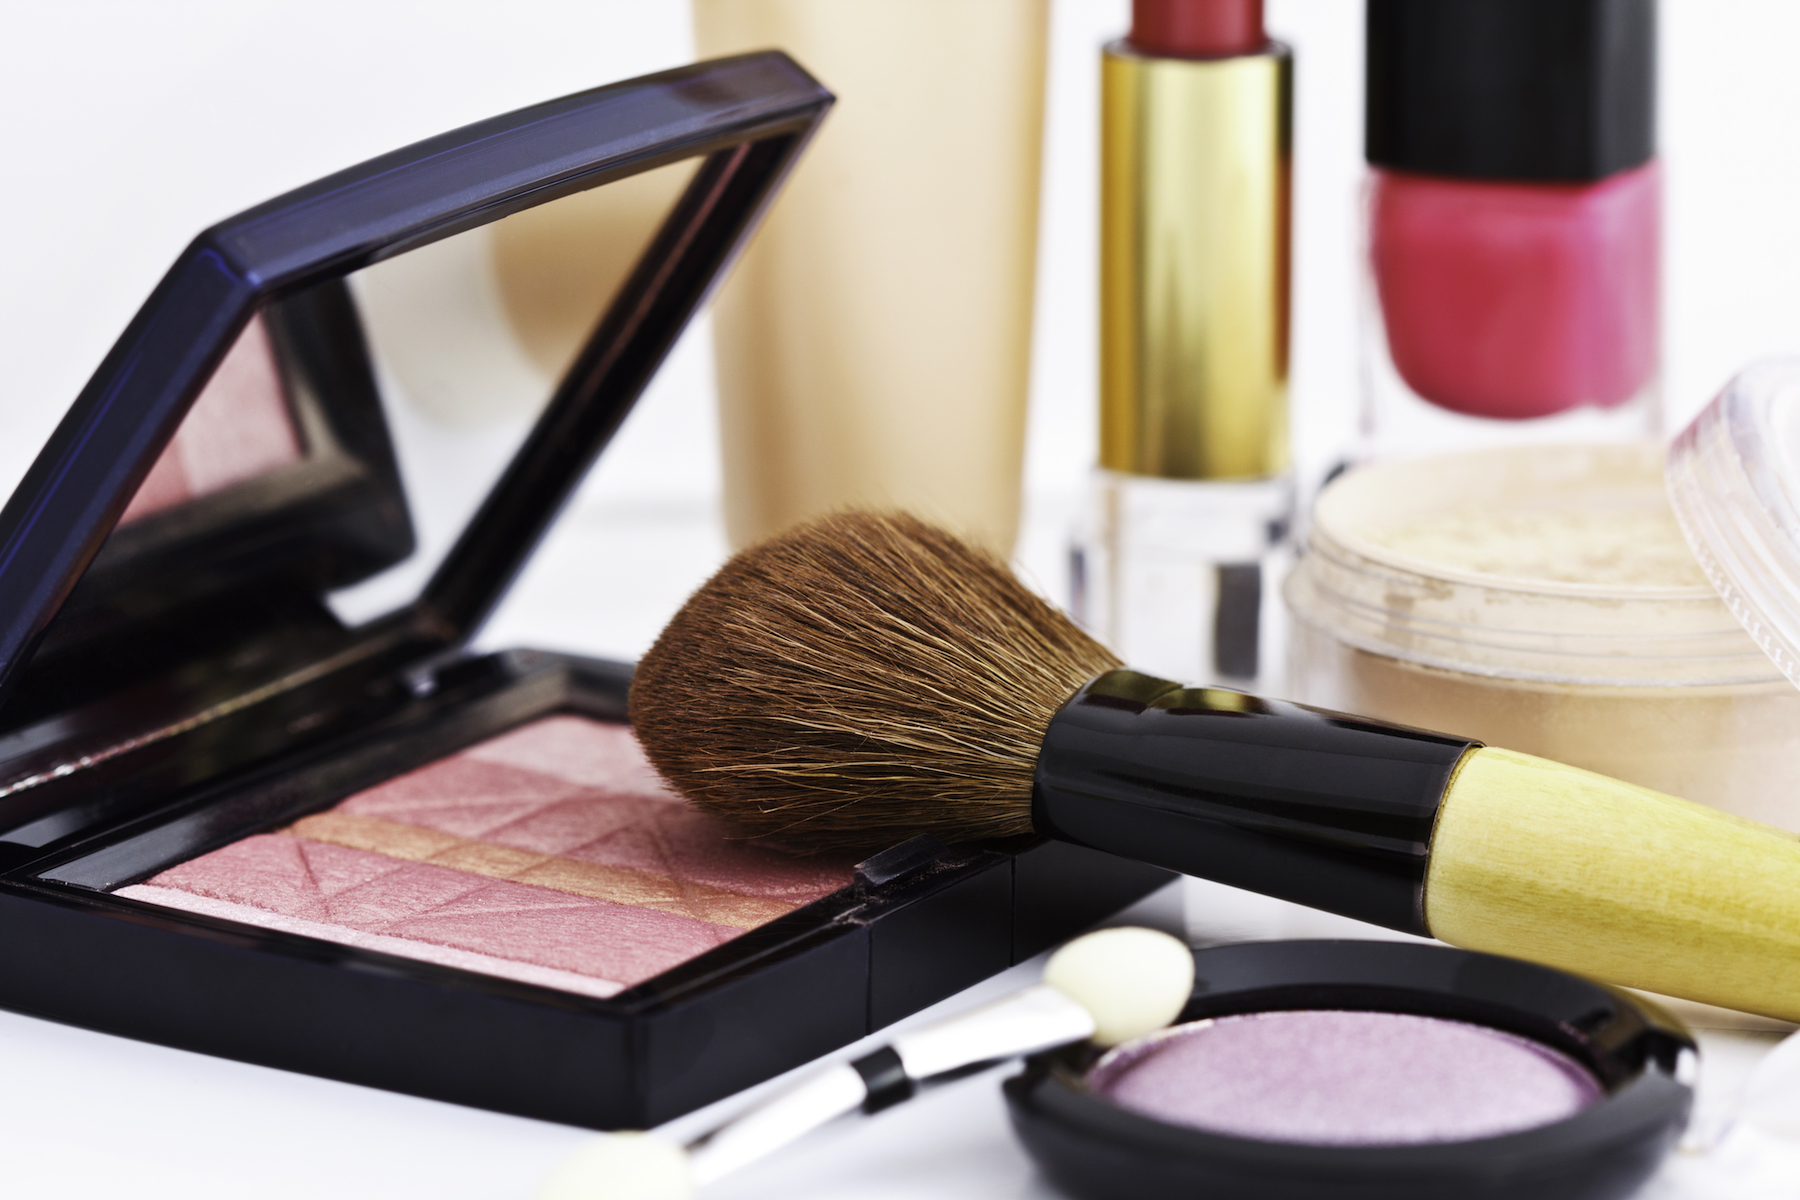 Beauty products sitting on a counter